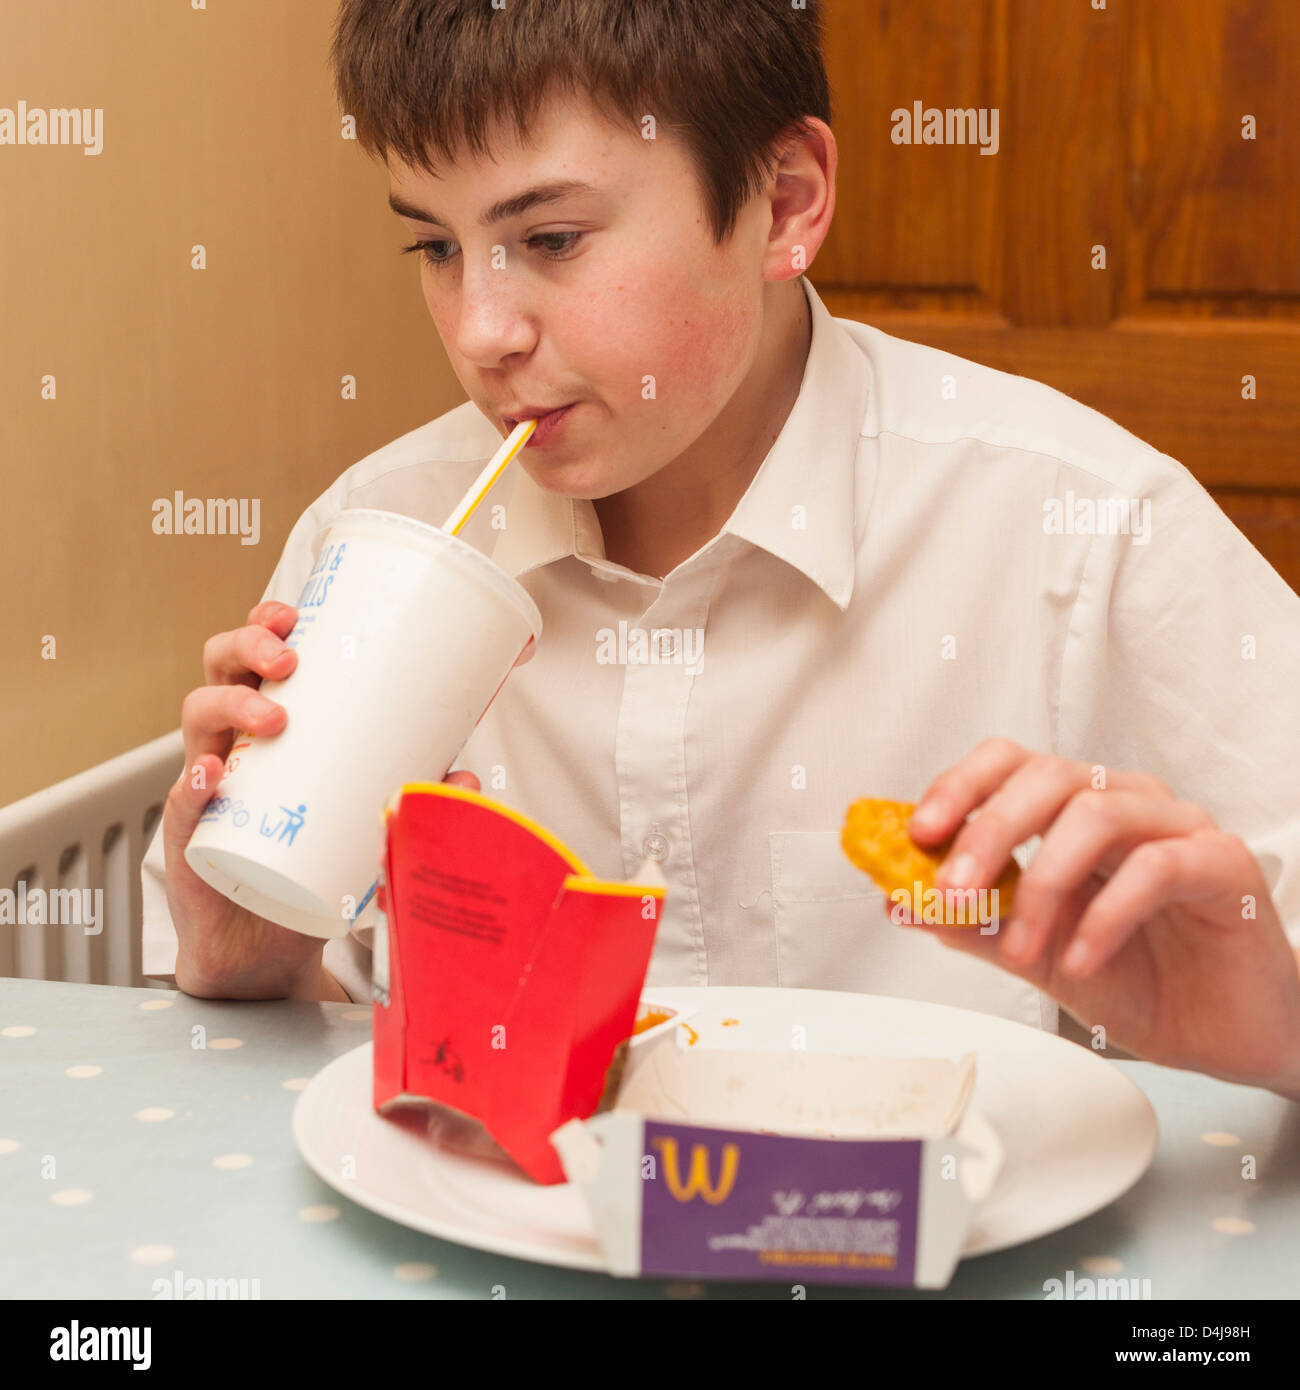 A thirteen year old boy eating a Mcdonalds meal at home in the Uk - Stock Image